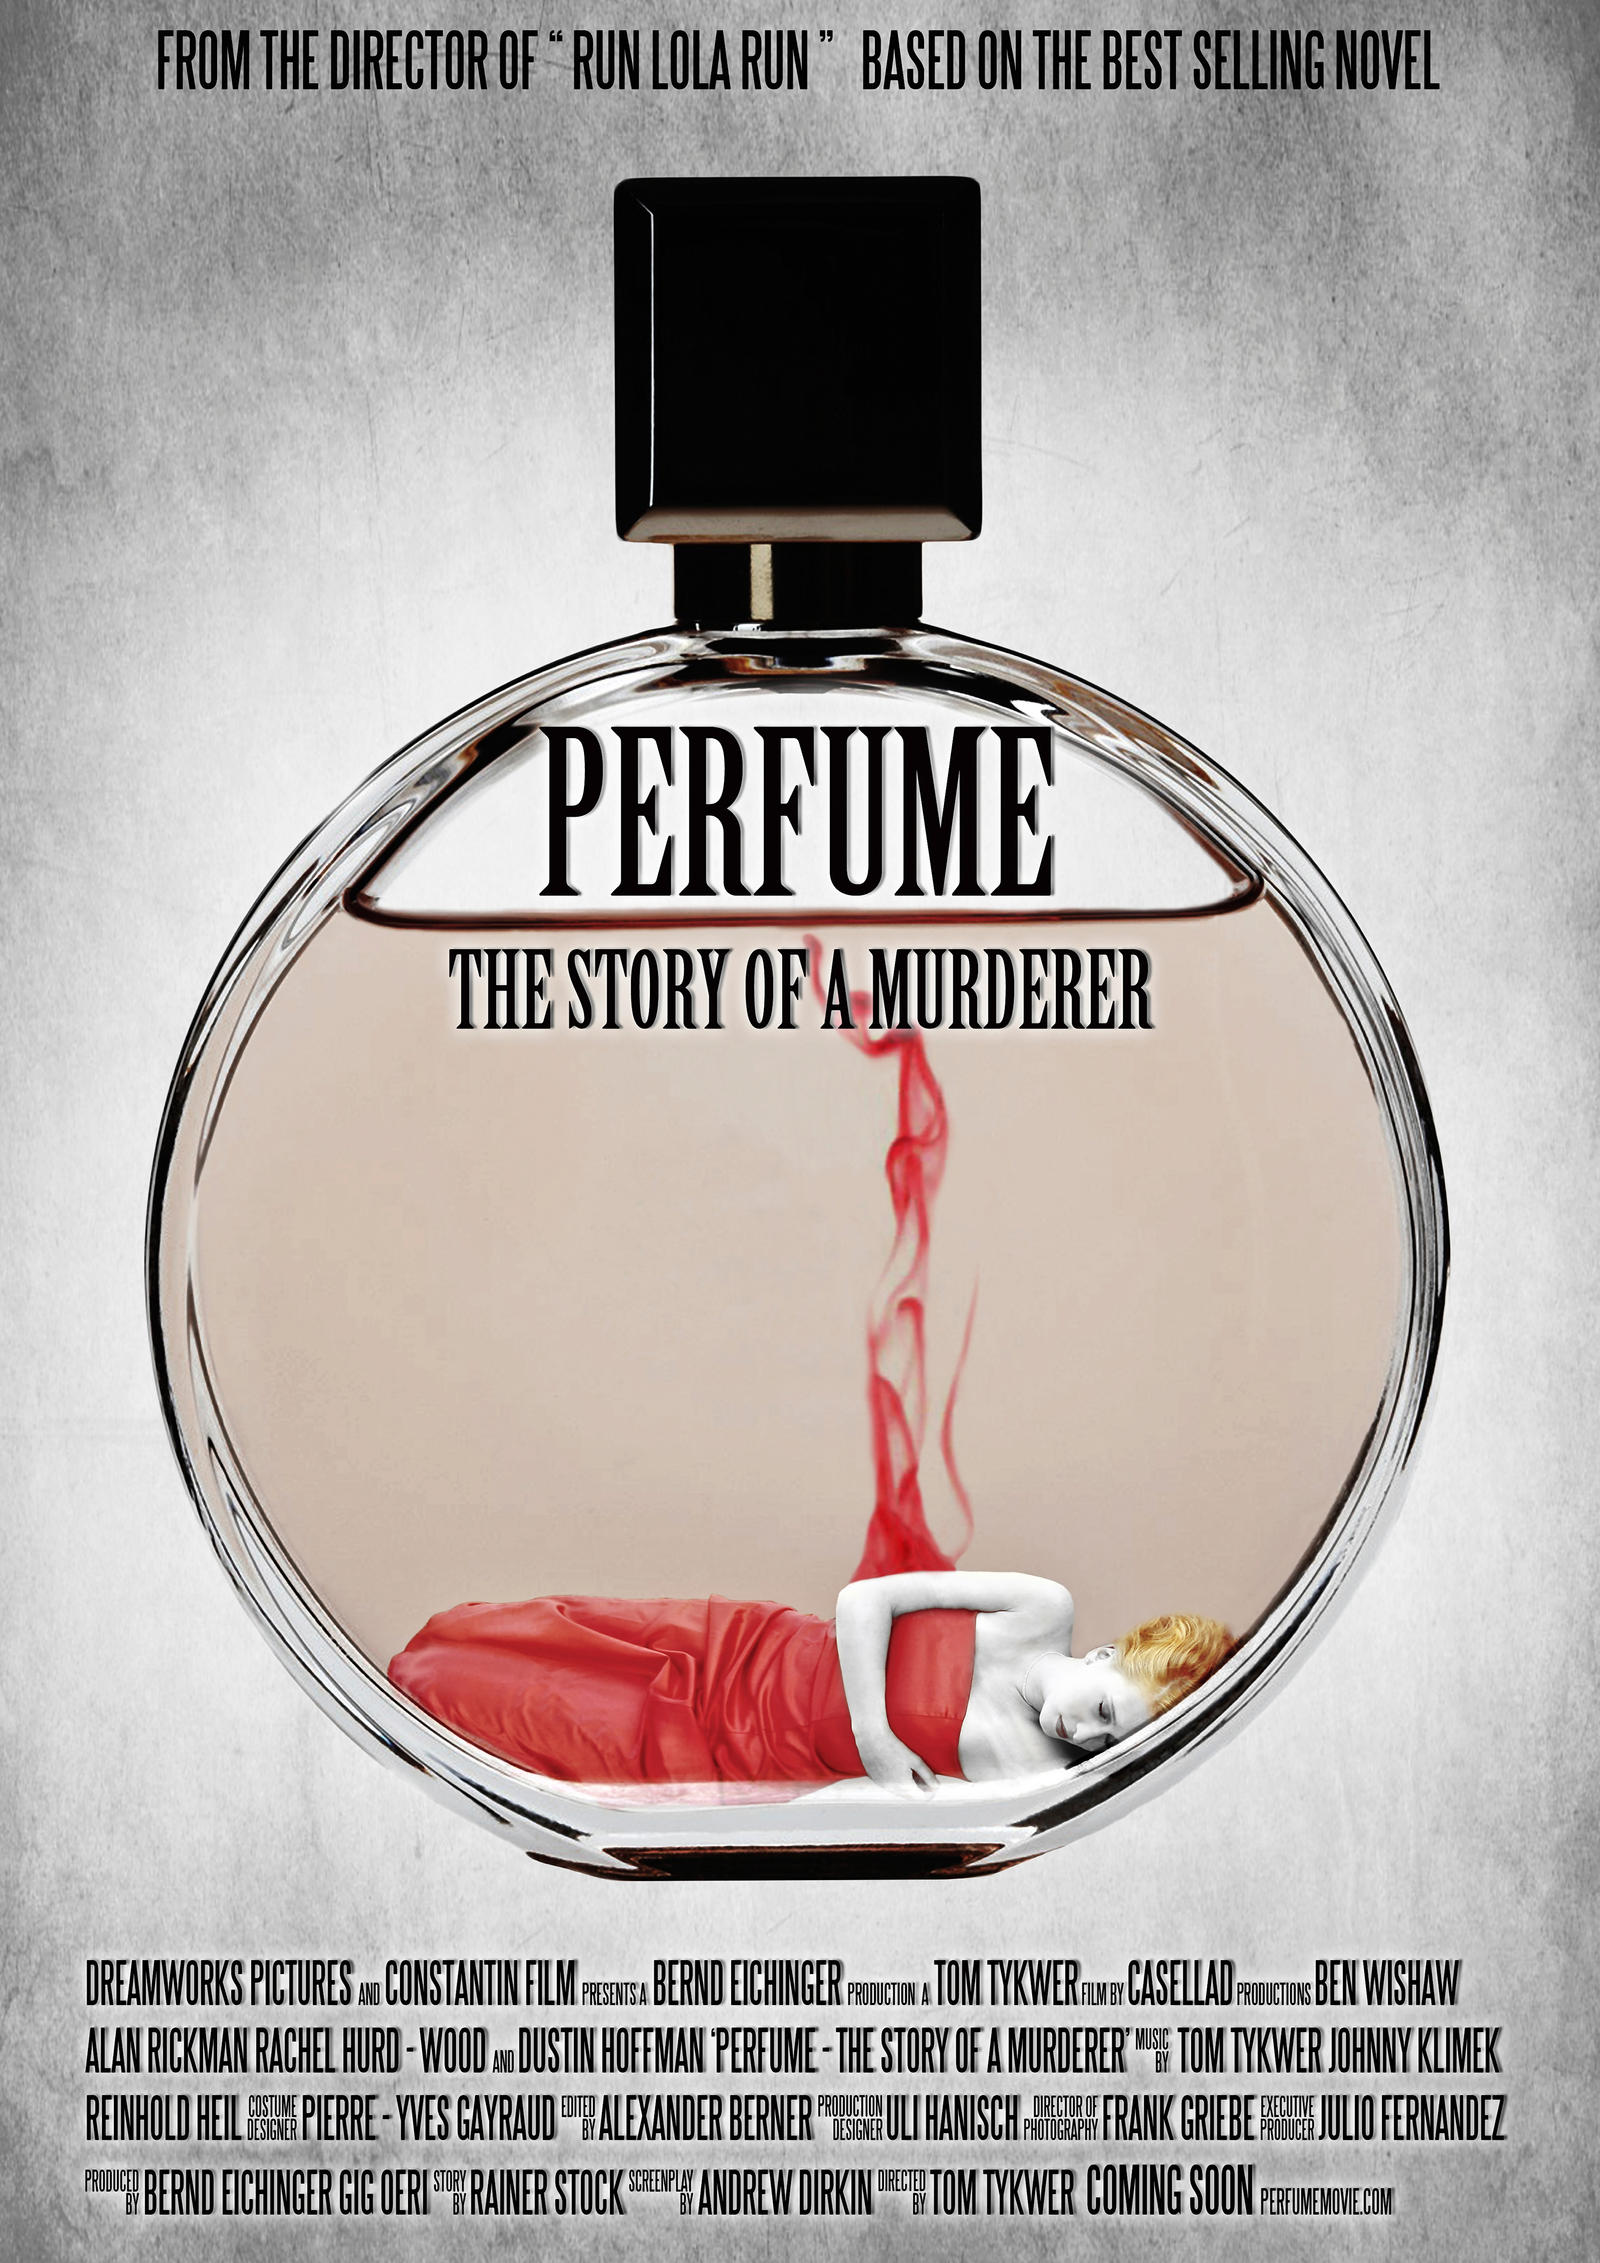 essay perfume essay perfume perfume advertisement analysis essay don t hesitate perfume the story of a murderer